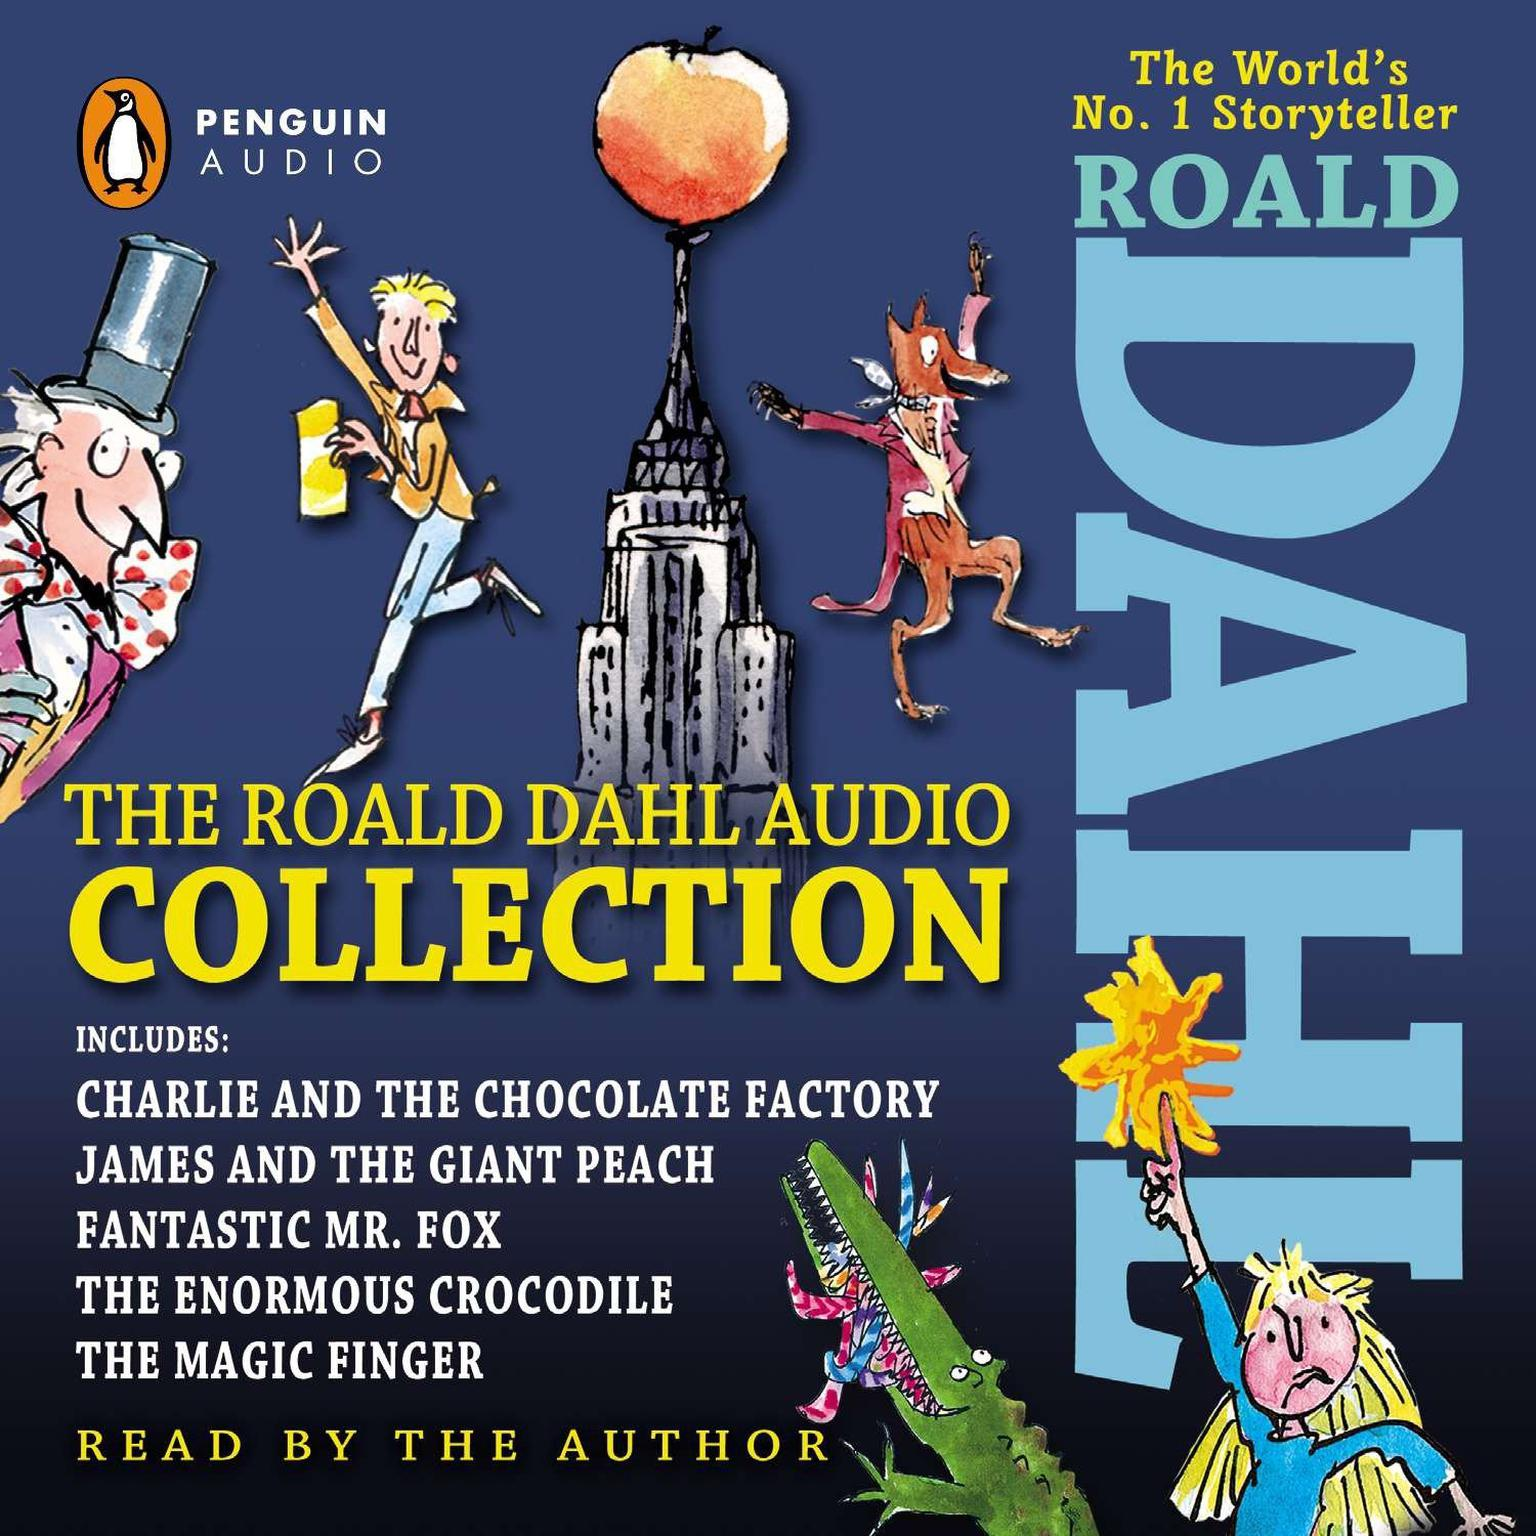 Printable The Roald Dahl Audio Collection: Includes Charlie and the Chocolate Factory, James & the Giant Peach, Fantastic M r. Fox, The Enormous Crocodile & The Magic Finger Audiobook Cover Art